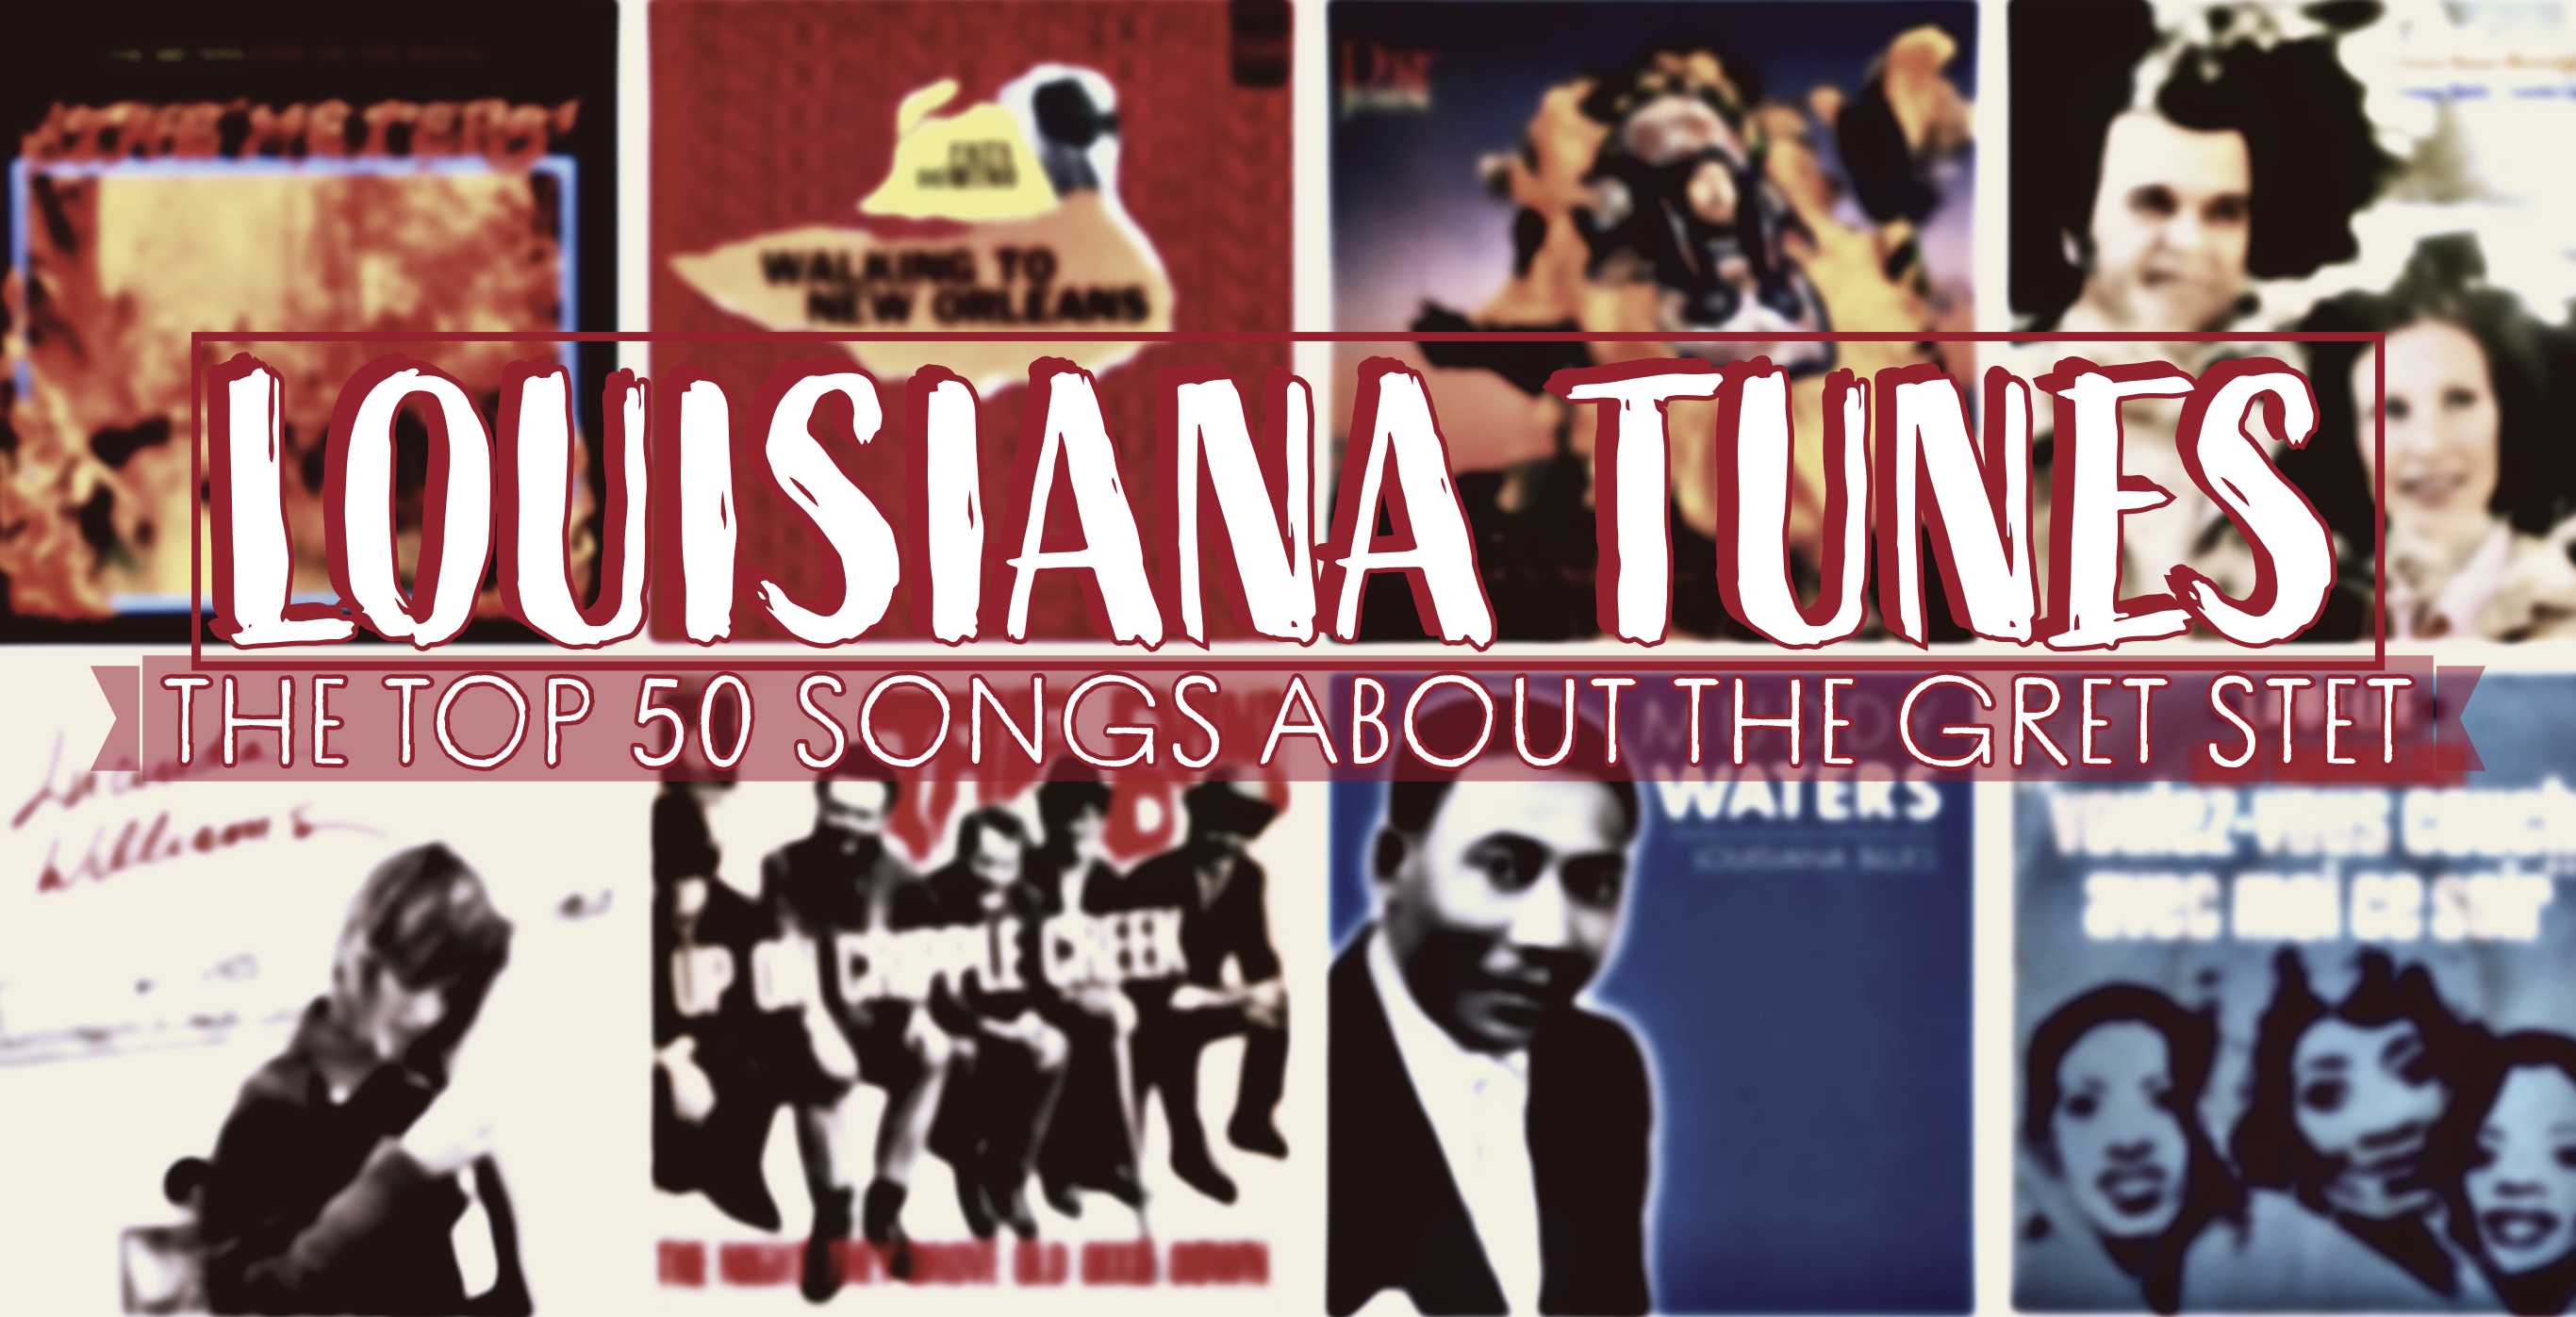 Louisiana Tunes: The Top 50* Songs About the Gret Stet - Bayou Brief